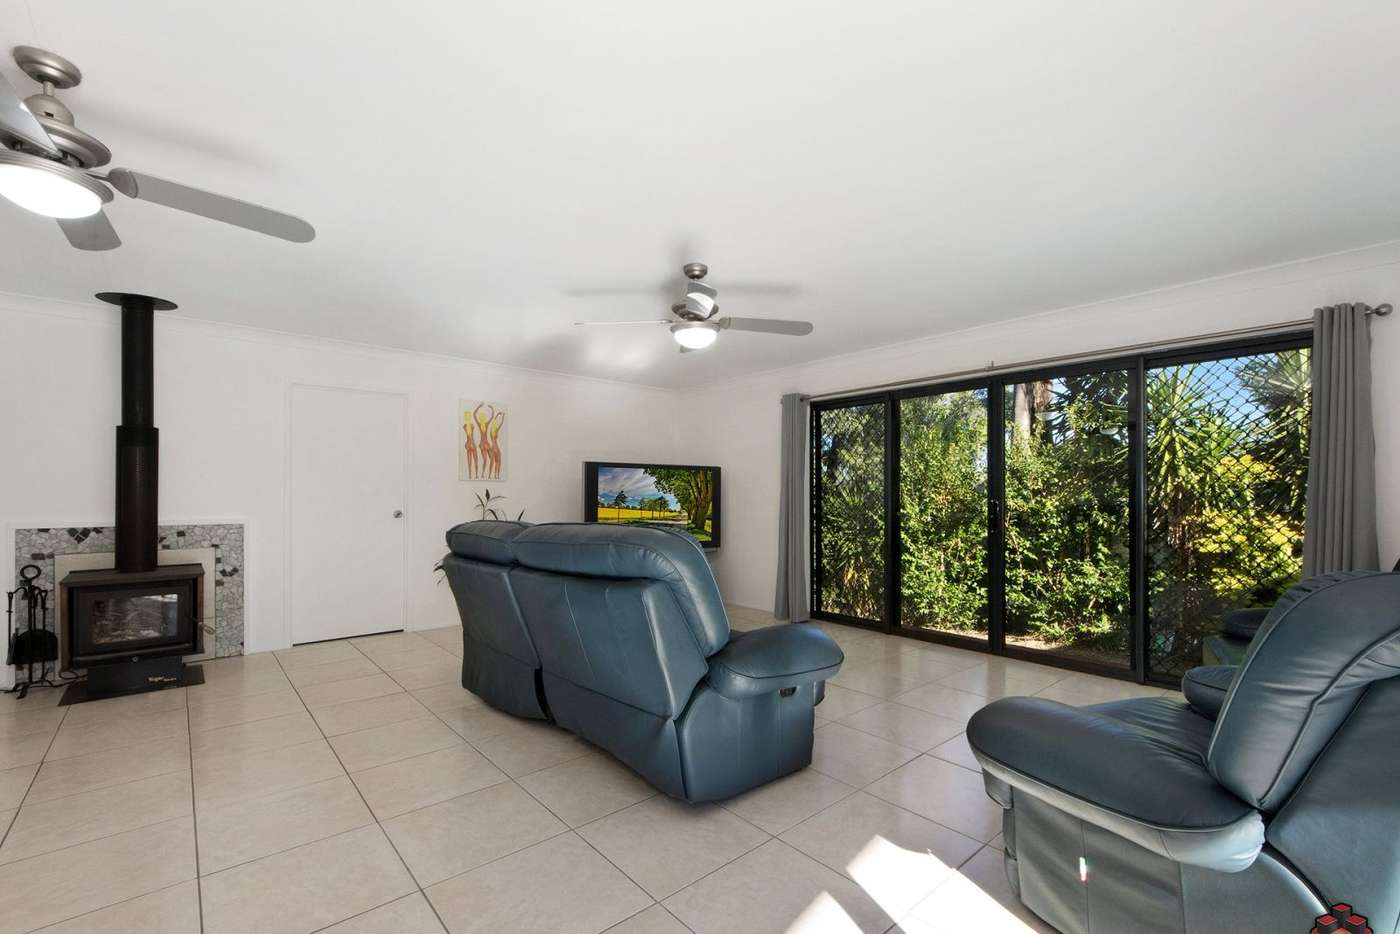 Seventh view of Homely house listing, 20 Sturt St, Oxenford QLD 4210